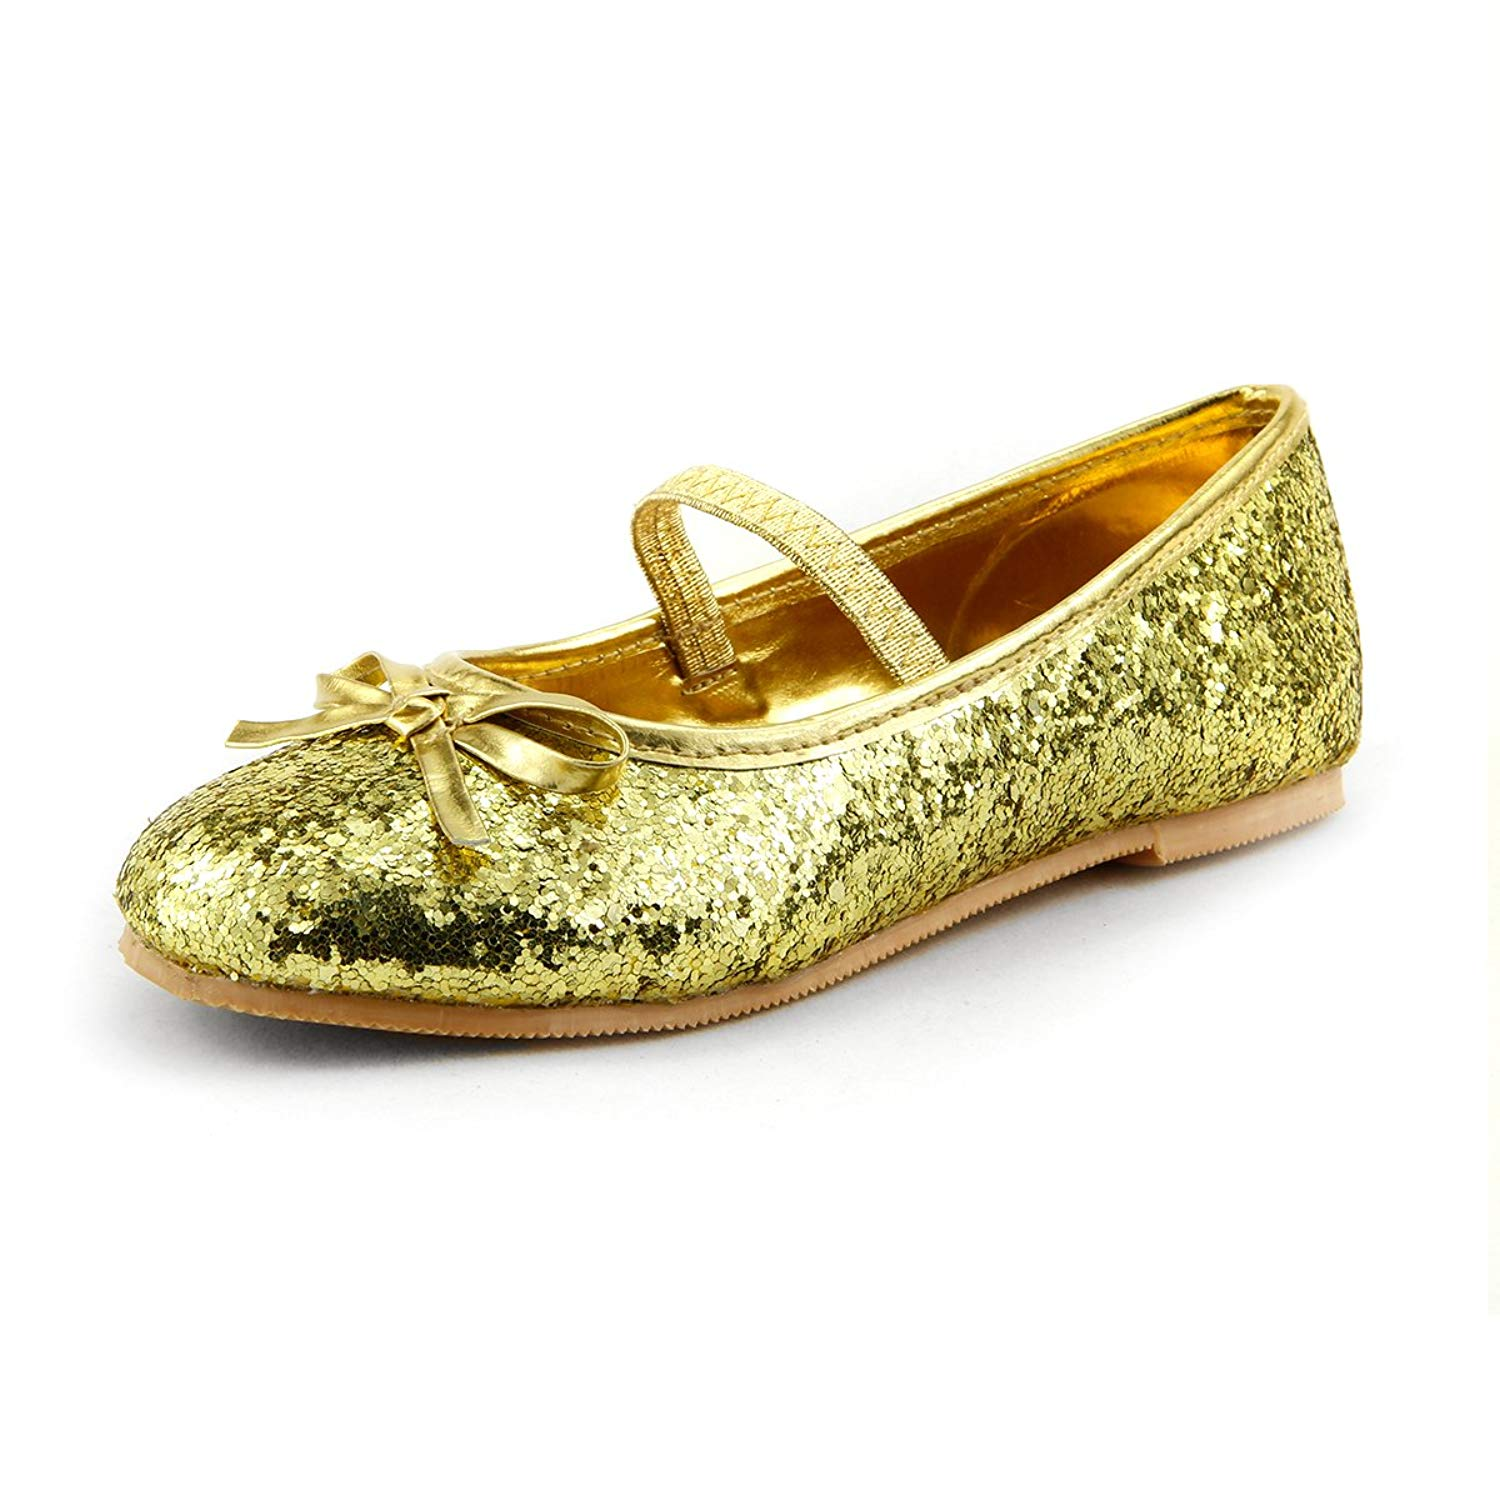 Wedding Flower S Glitter Sparkly Ballet Flat Shoes W Elastic Strap Toddler Size